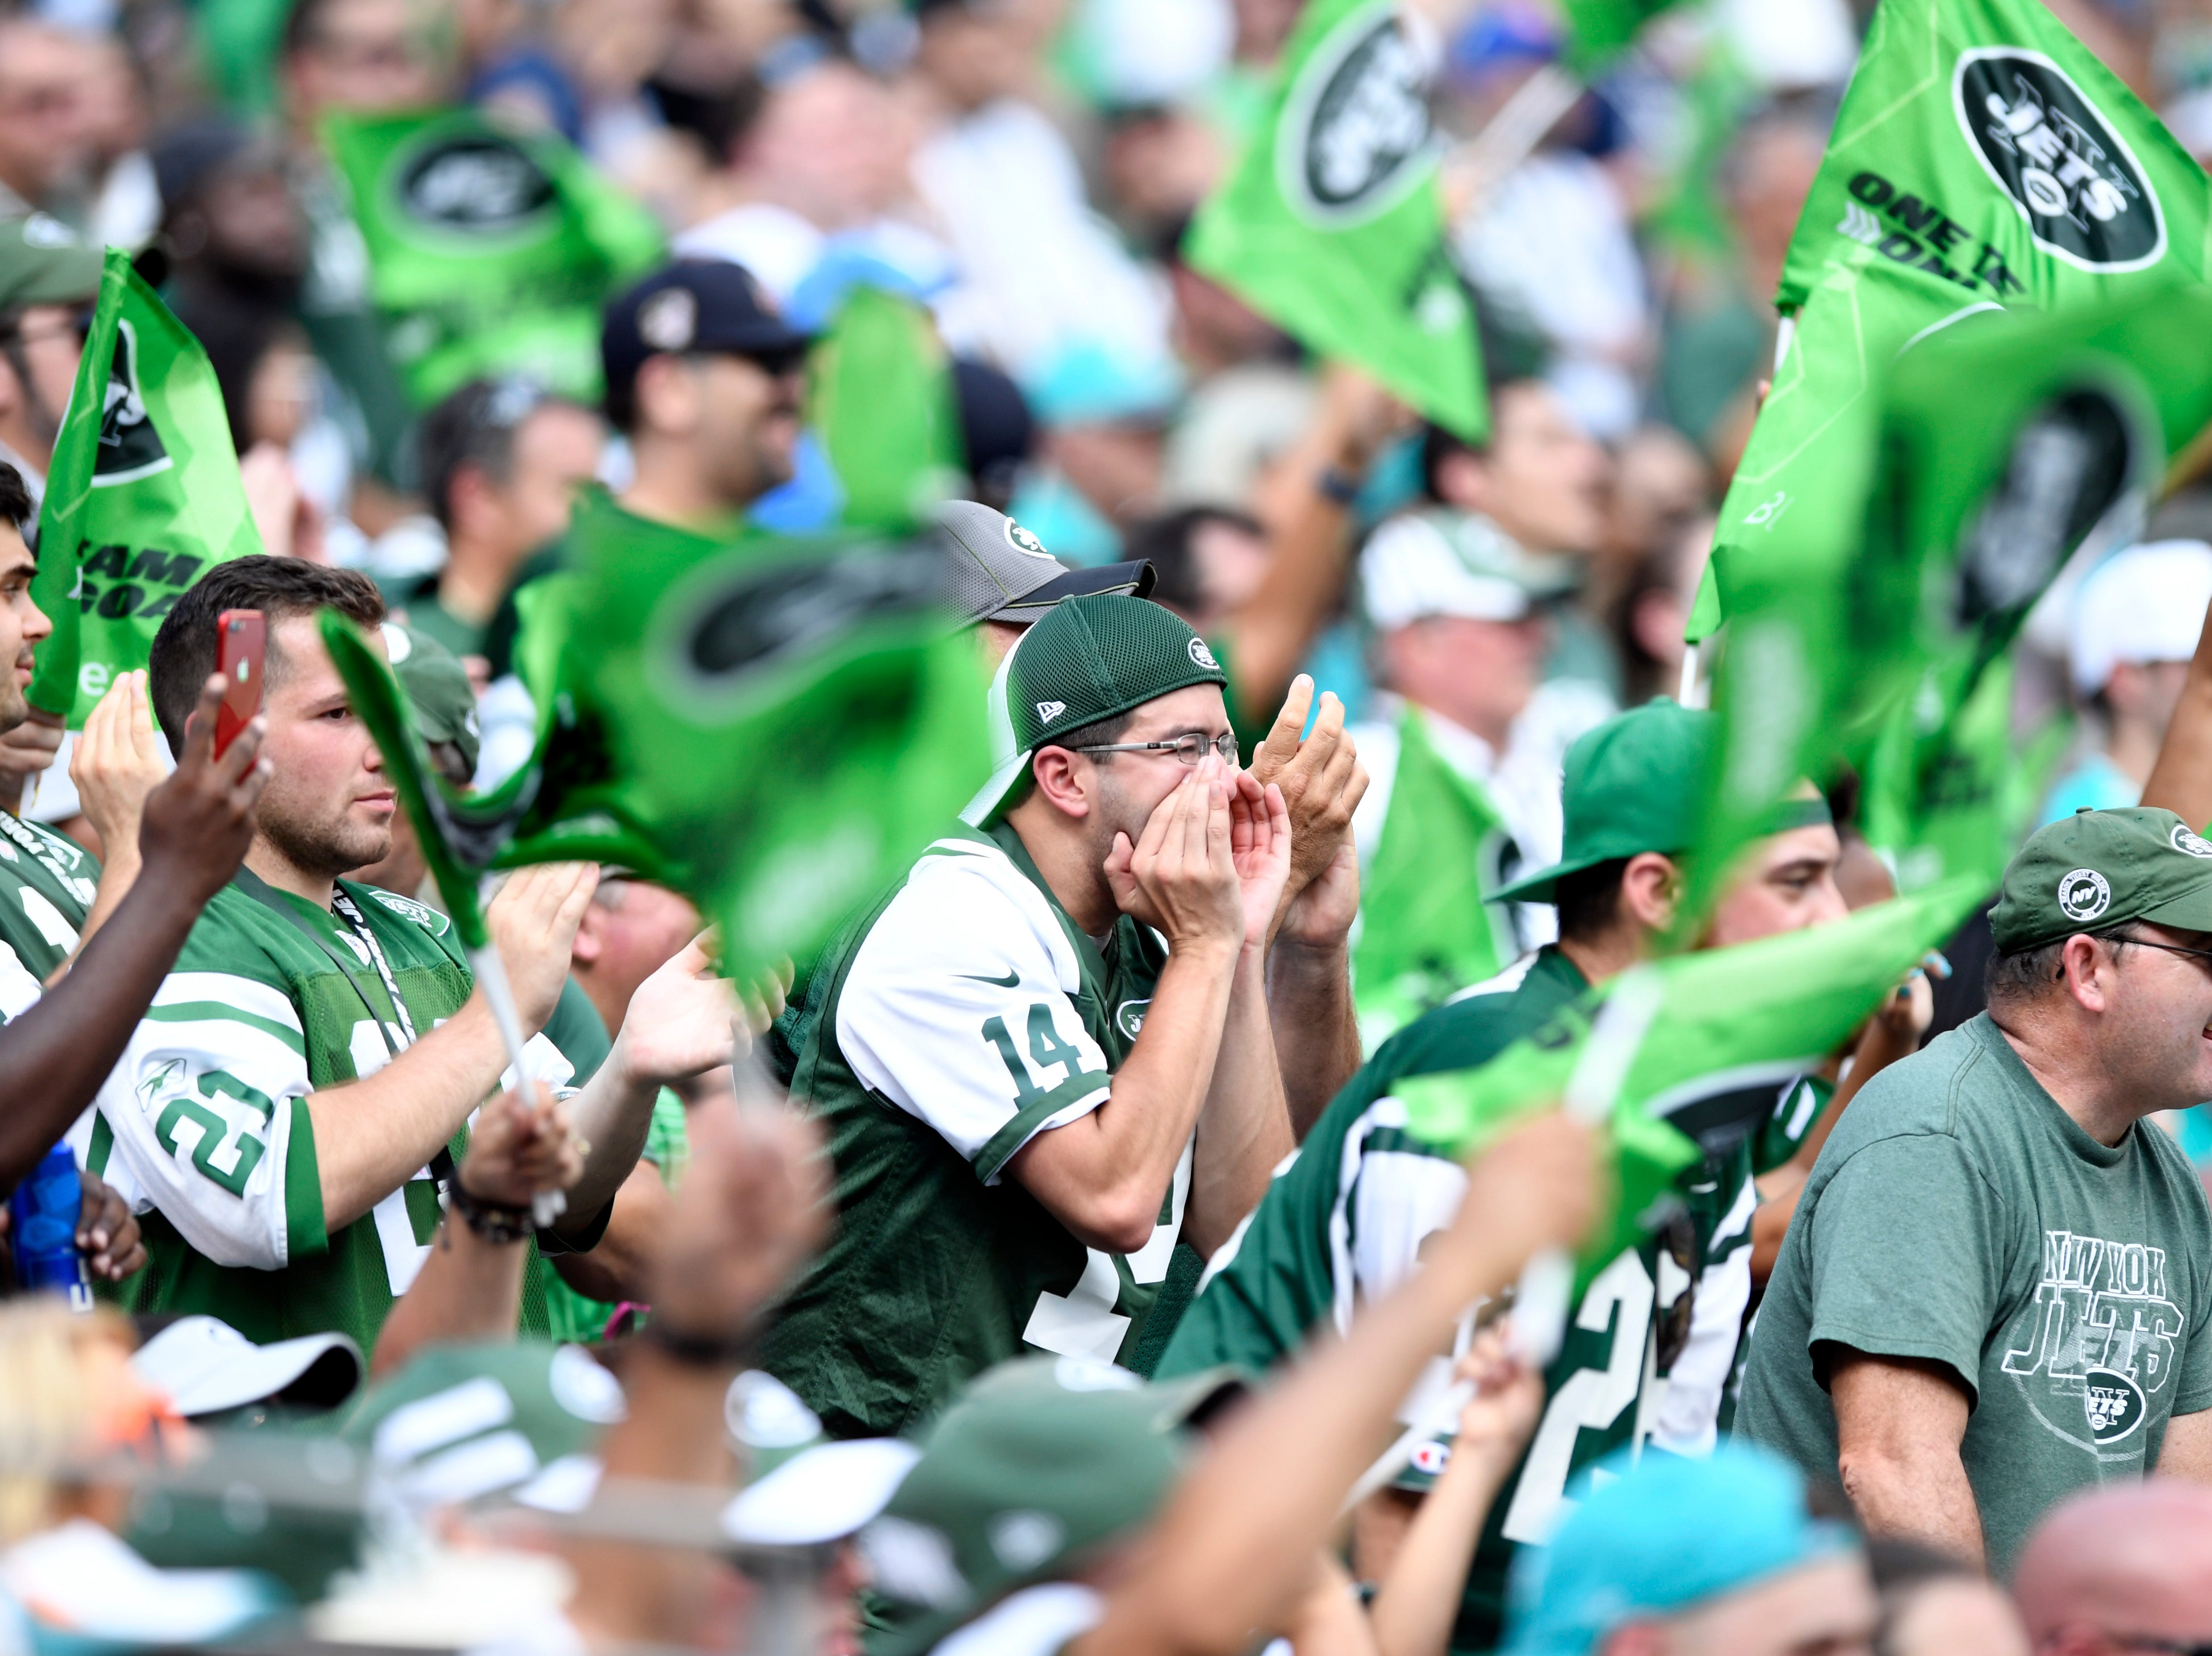 Jets fans cheer for their team as they face the Miami Dolphins in Week 2 at MetLife Stadium in East Rutherford, NJ on Sunday, September 16, 2018.